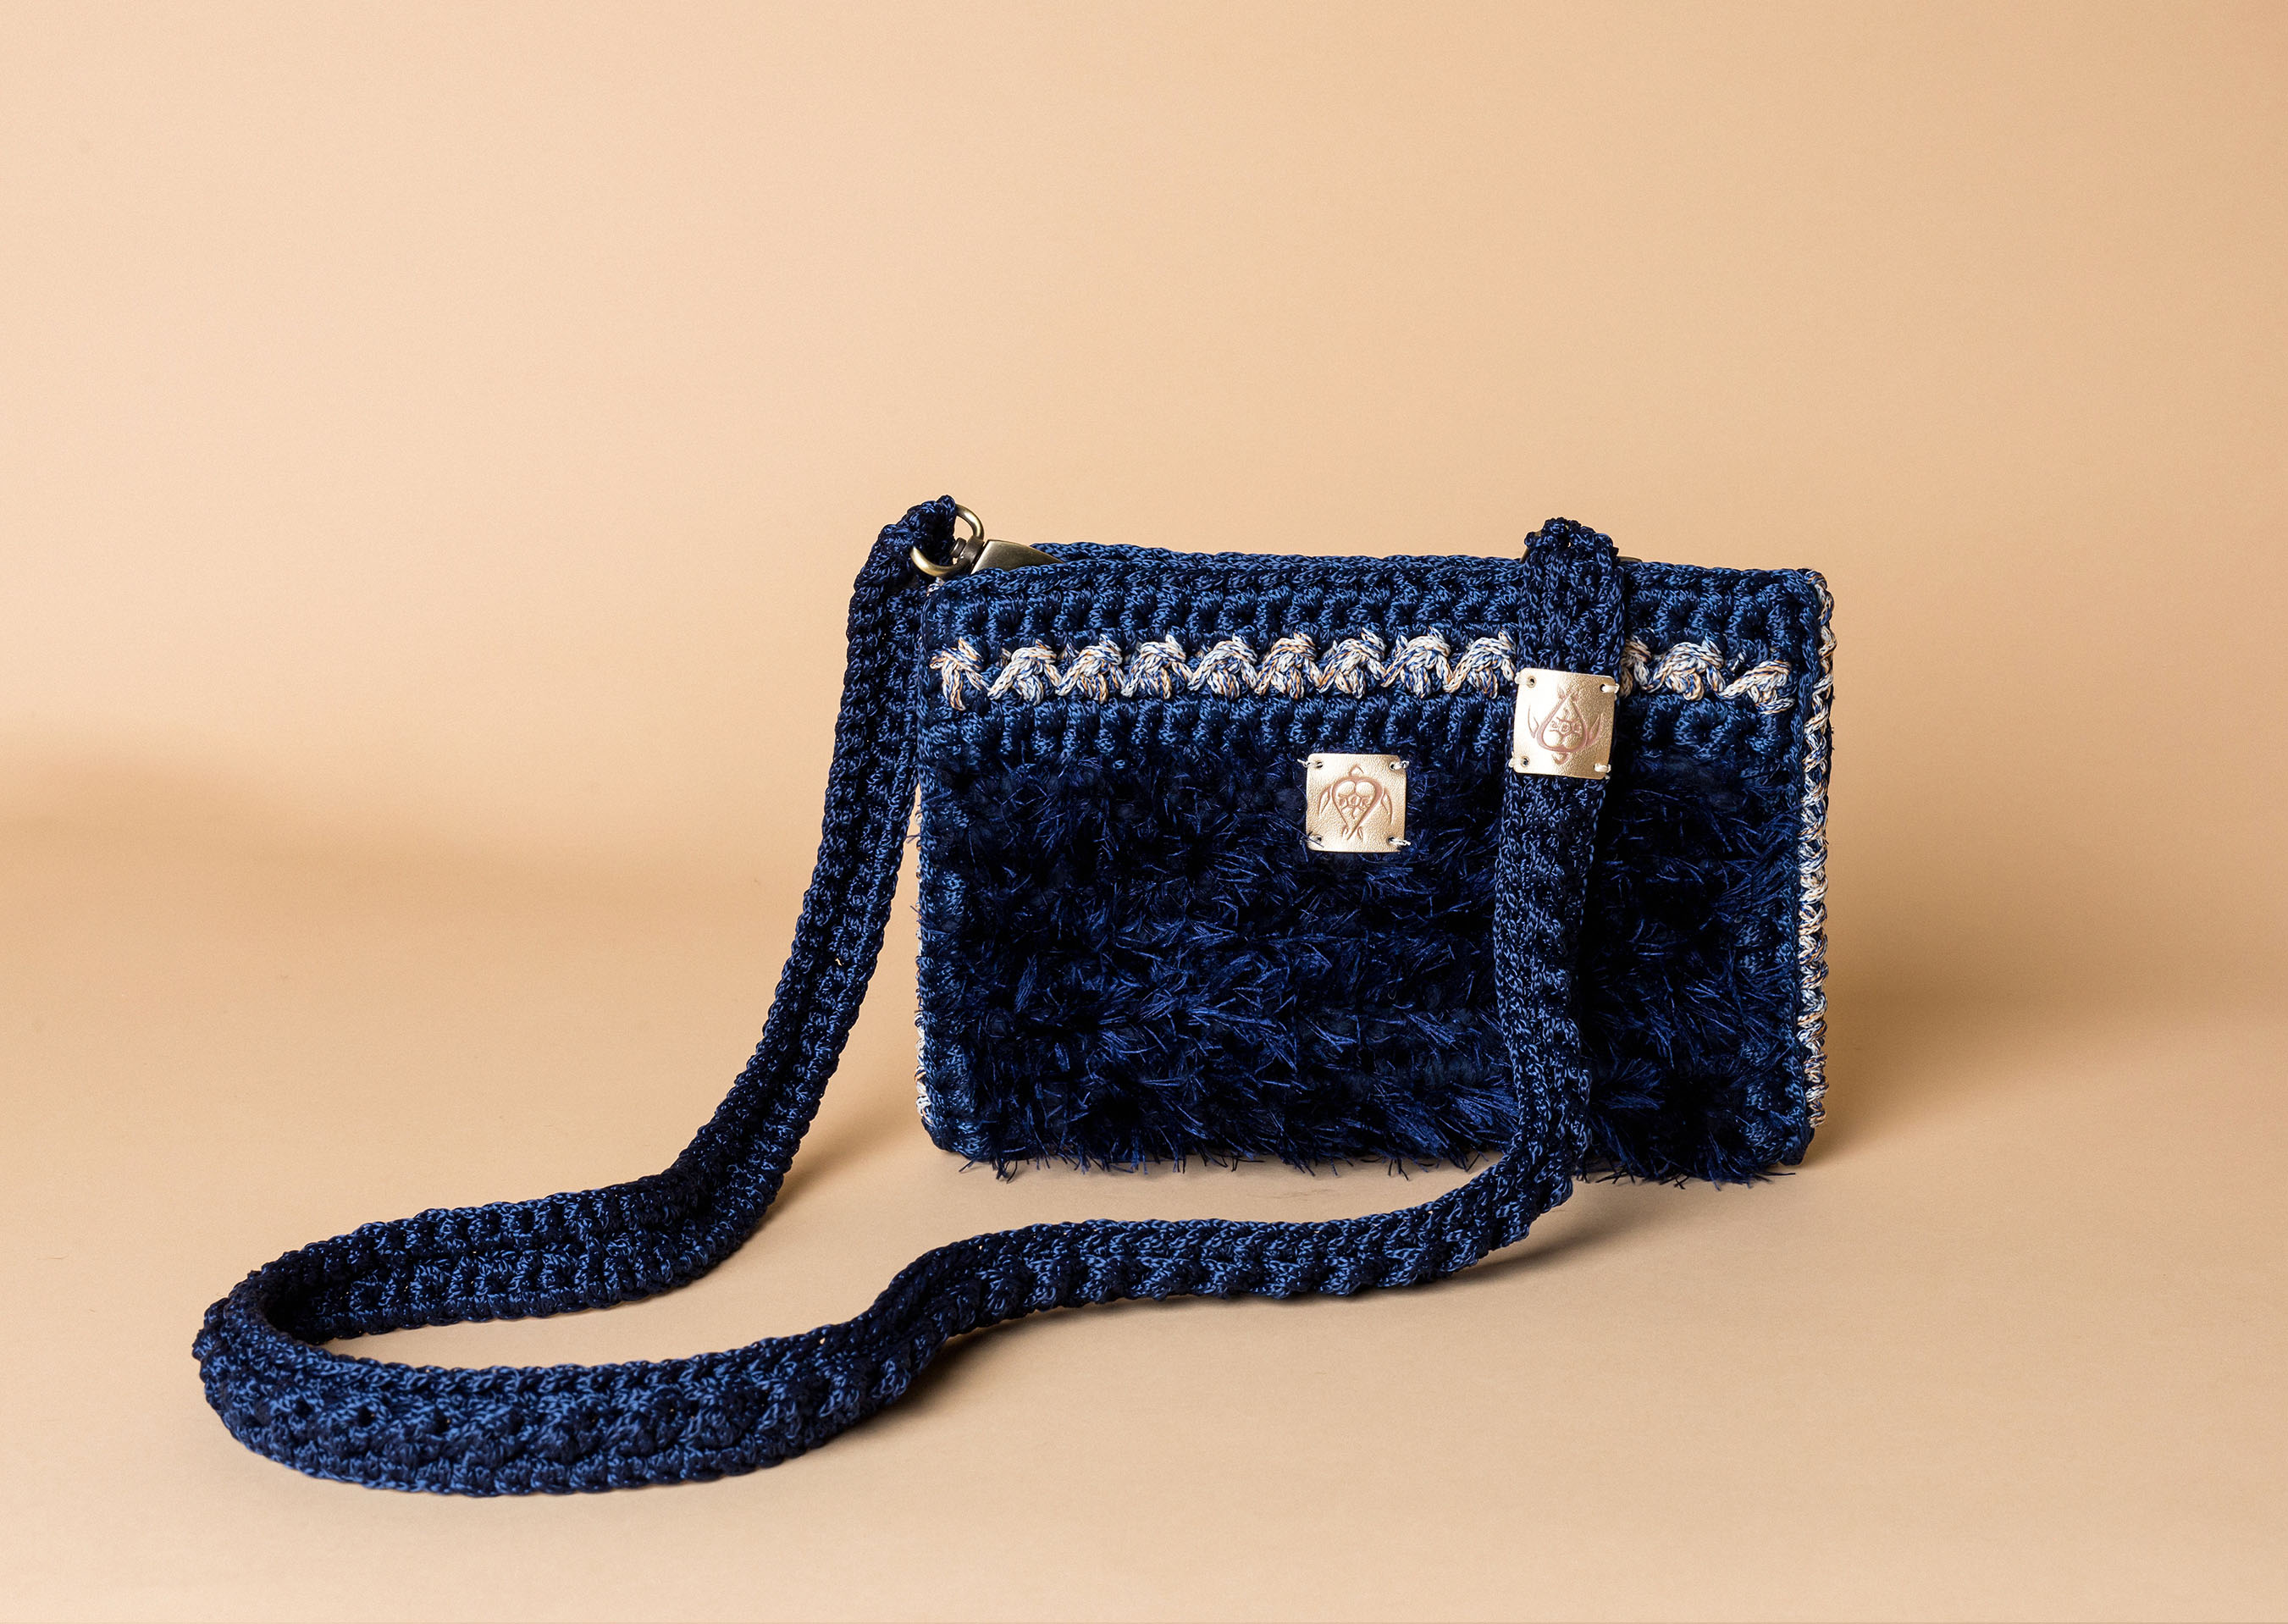 knitted bag petit in midnight blue